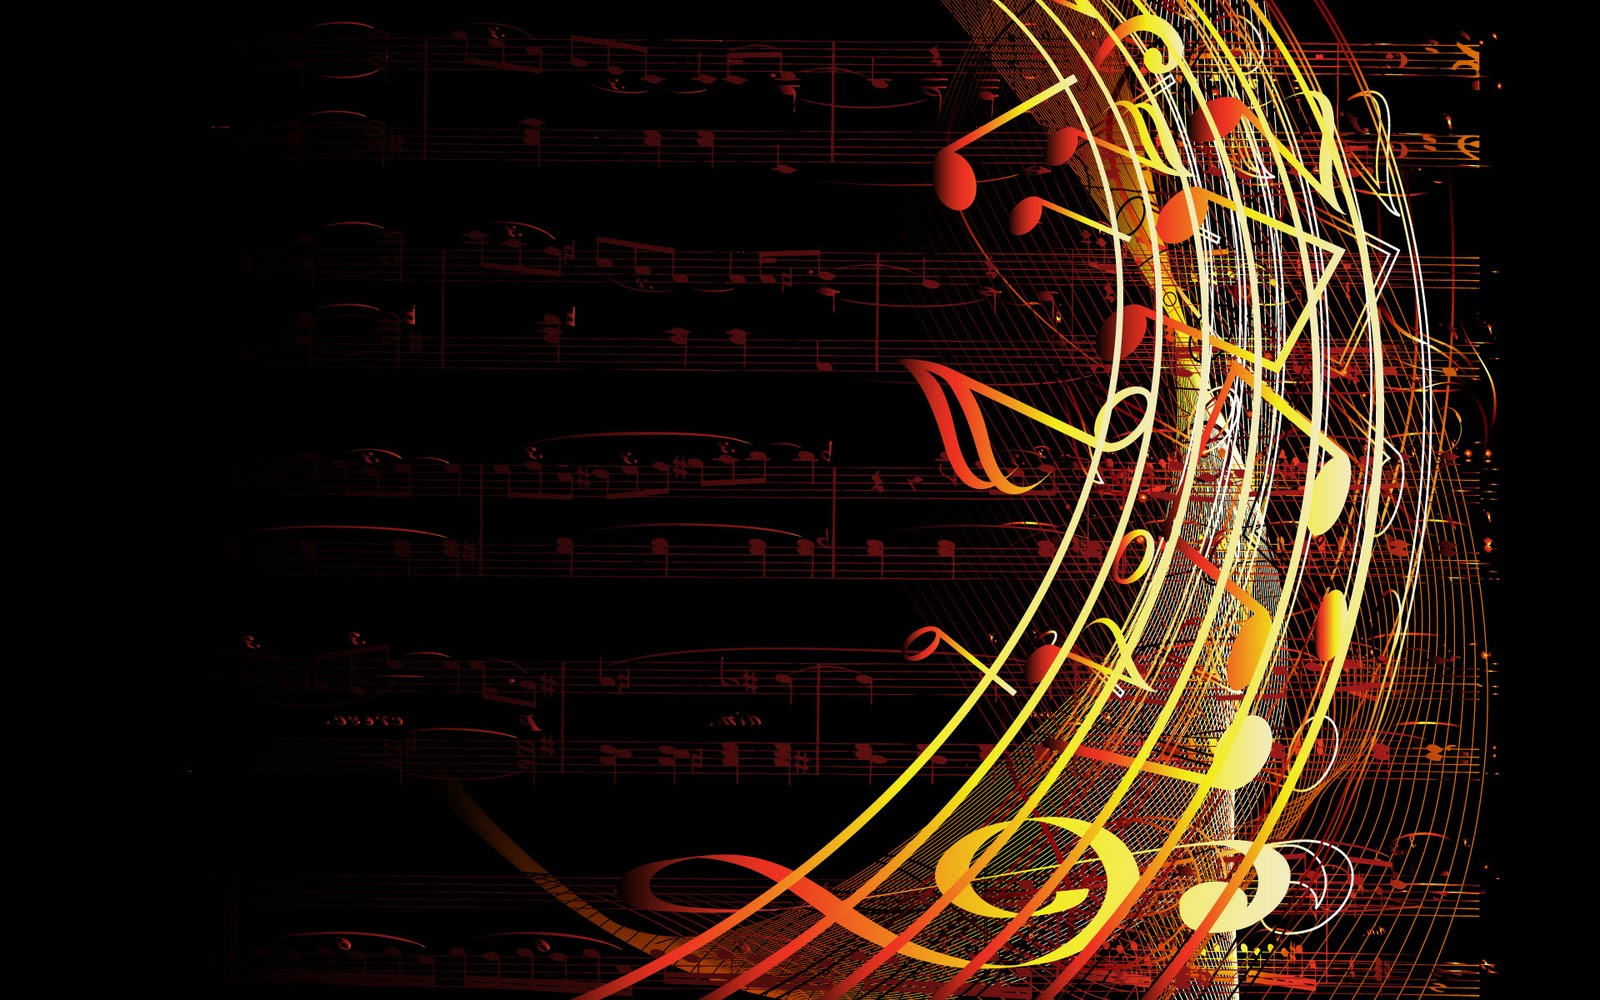 Music Backgrounds Music Desktop Background Free Premium: Imagen Gratis De Partitura Con Notas Musicales, En HD